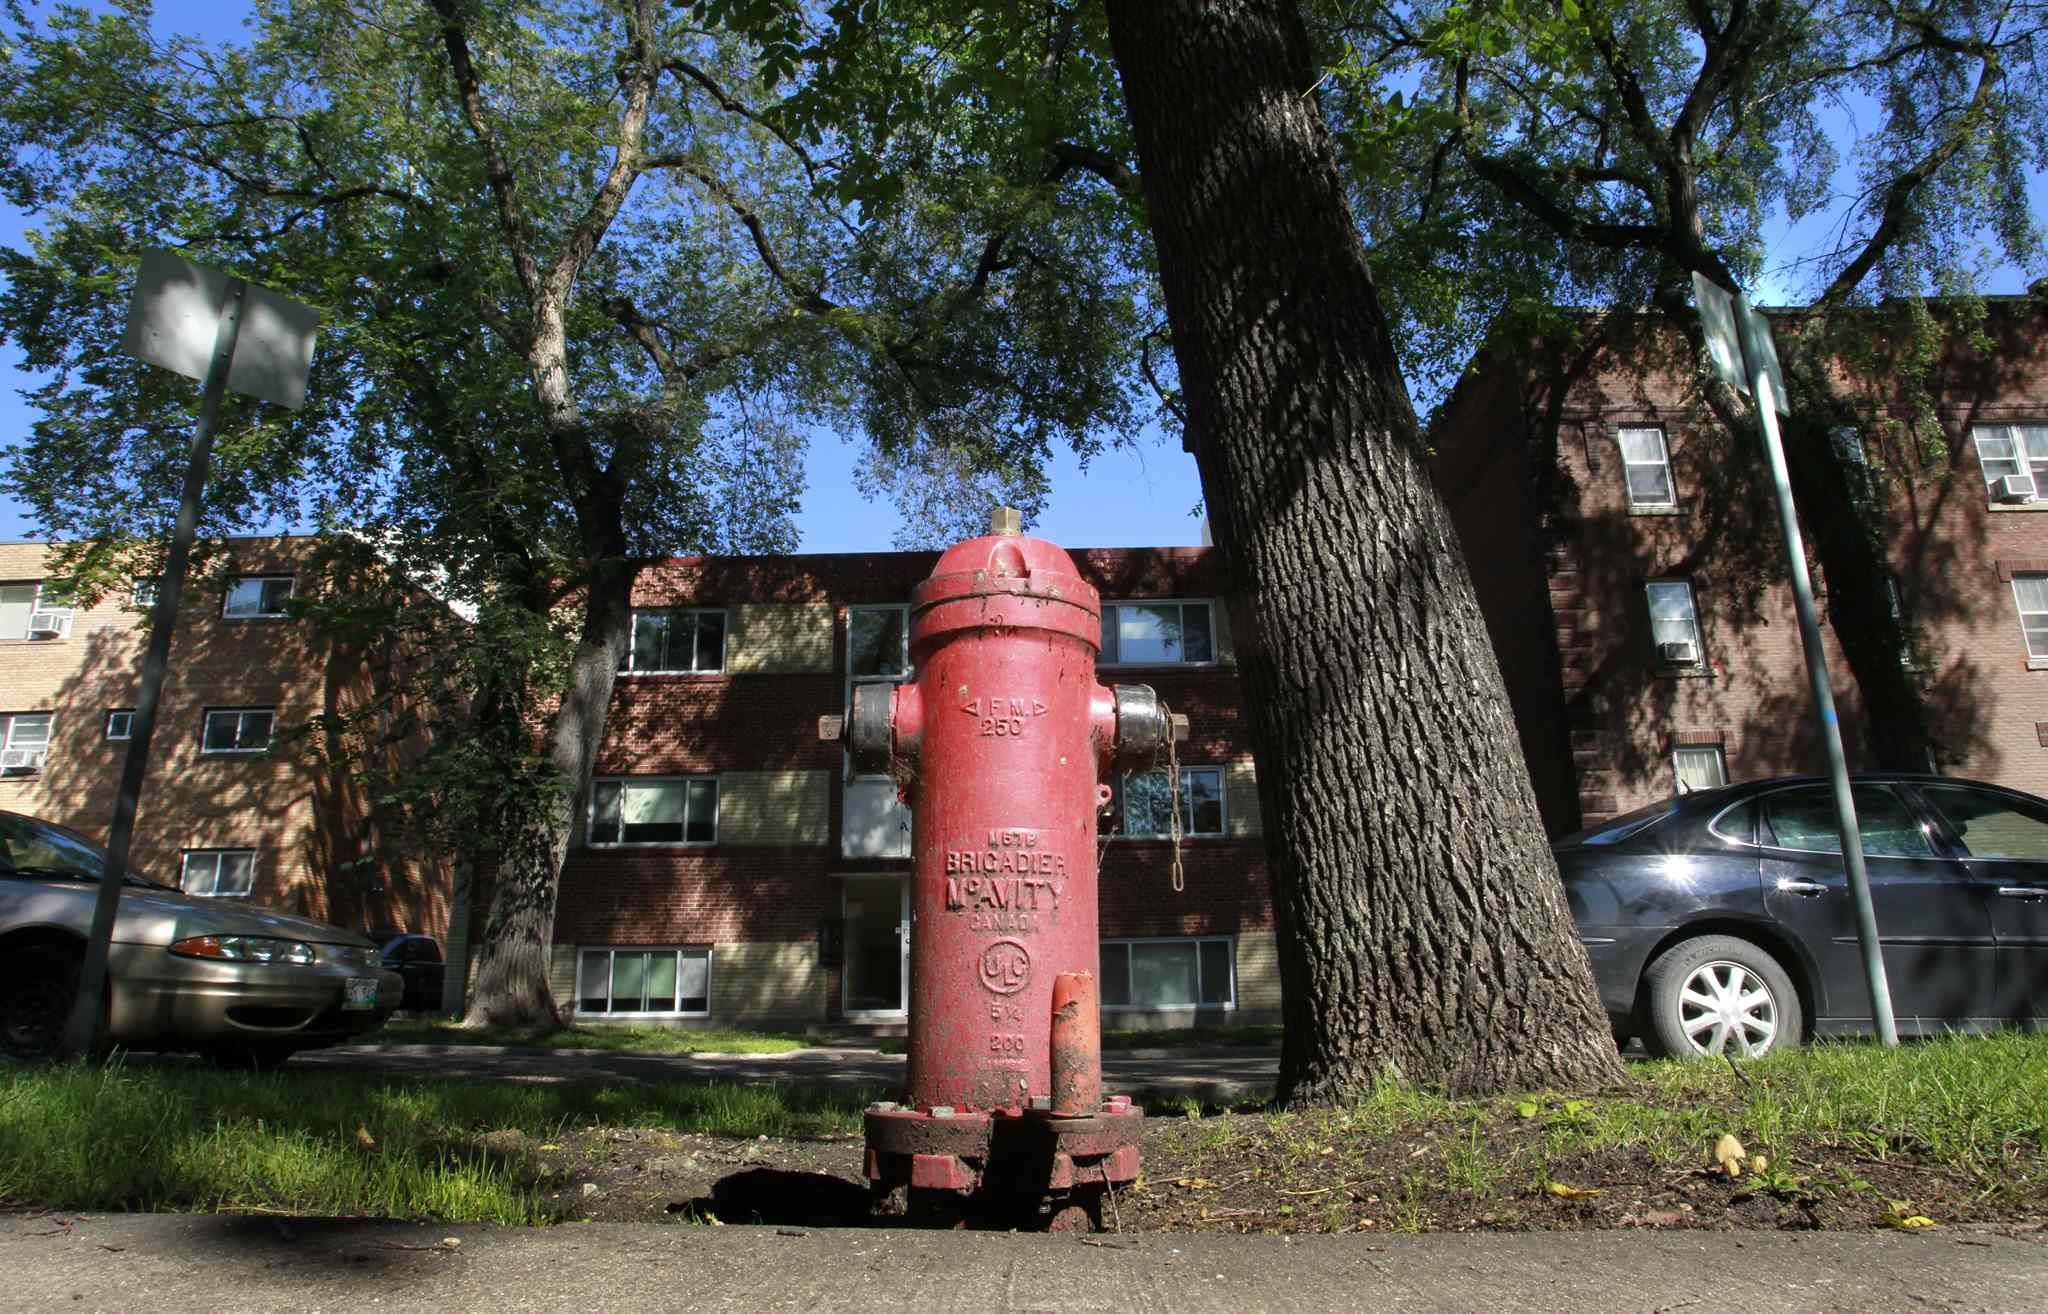 This fire hydrant on Carlton Street between Broadway and Assiniboine Avenue is doing more for the city than dousing fires.